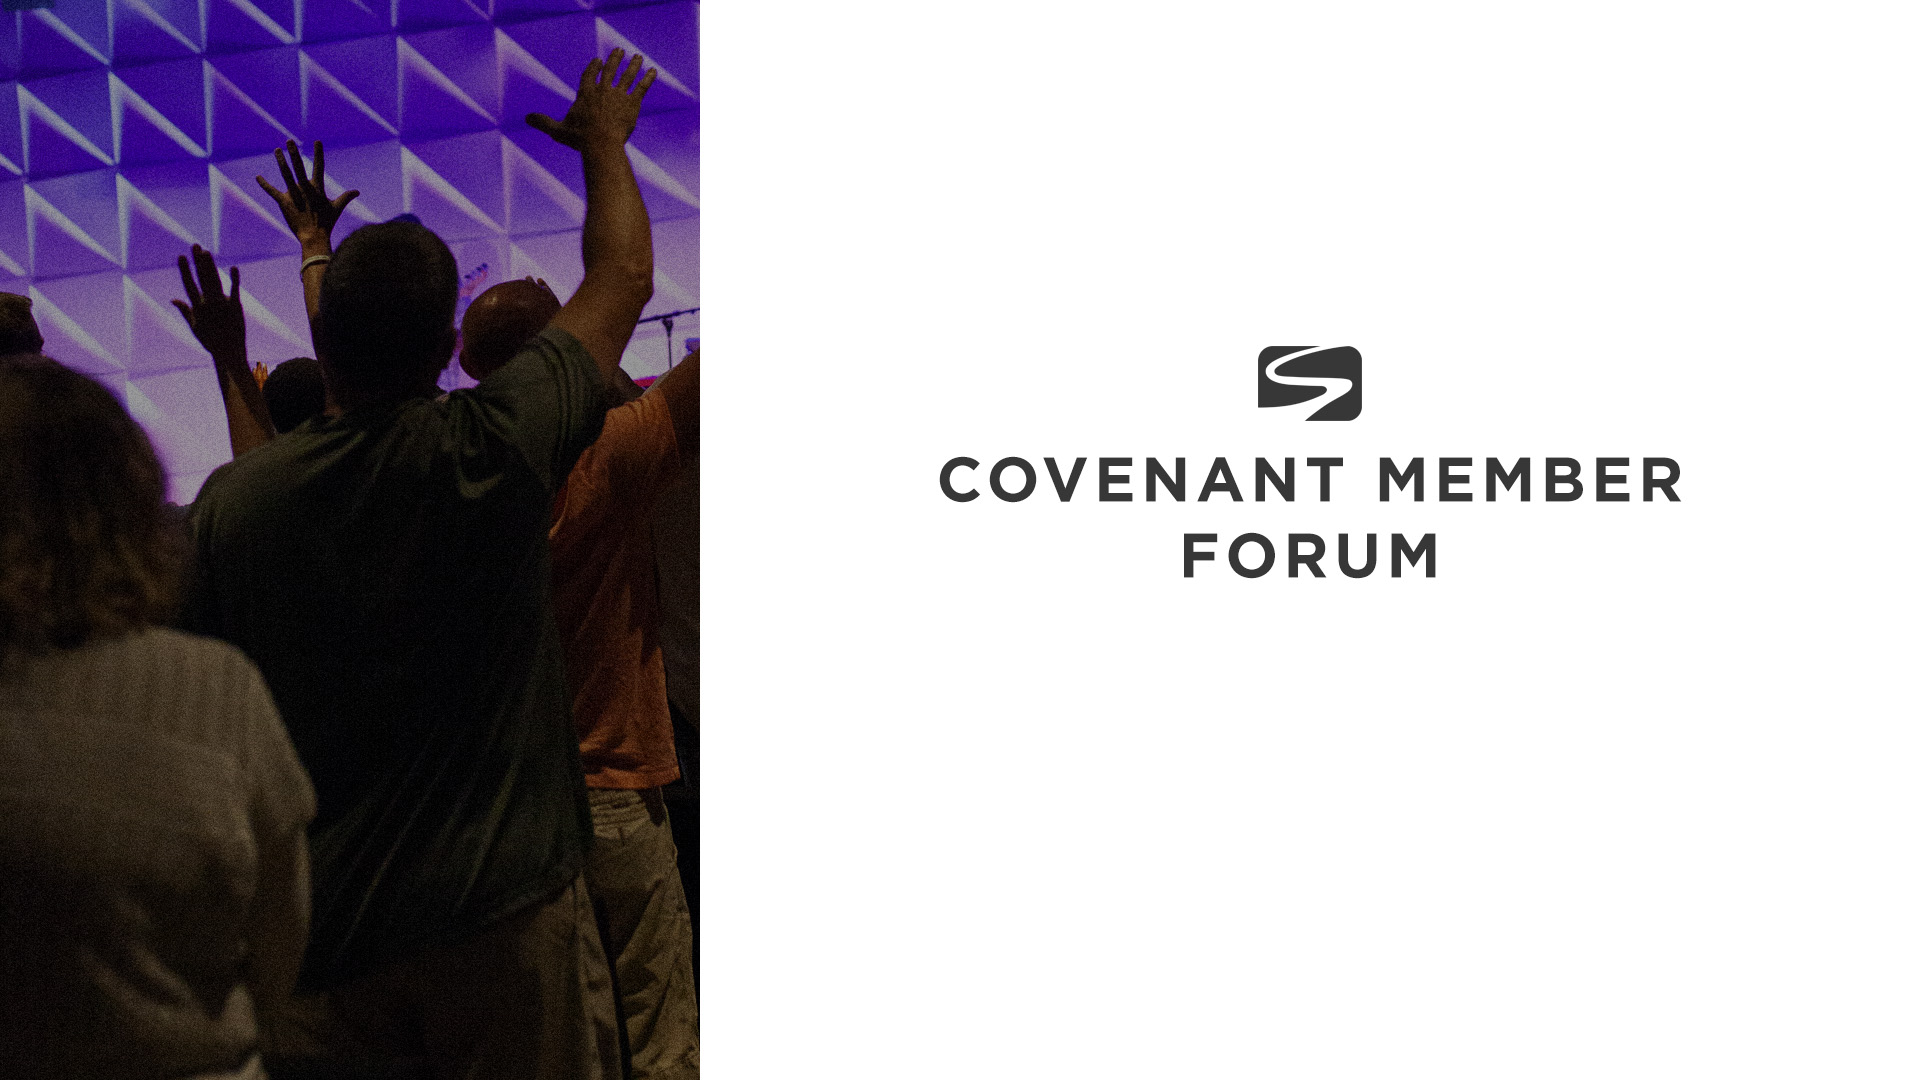 Covenant-Member-Forum-Slide-2019